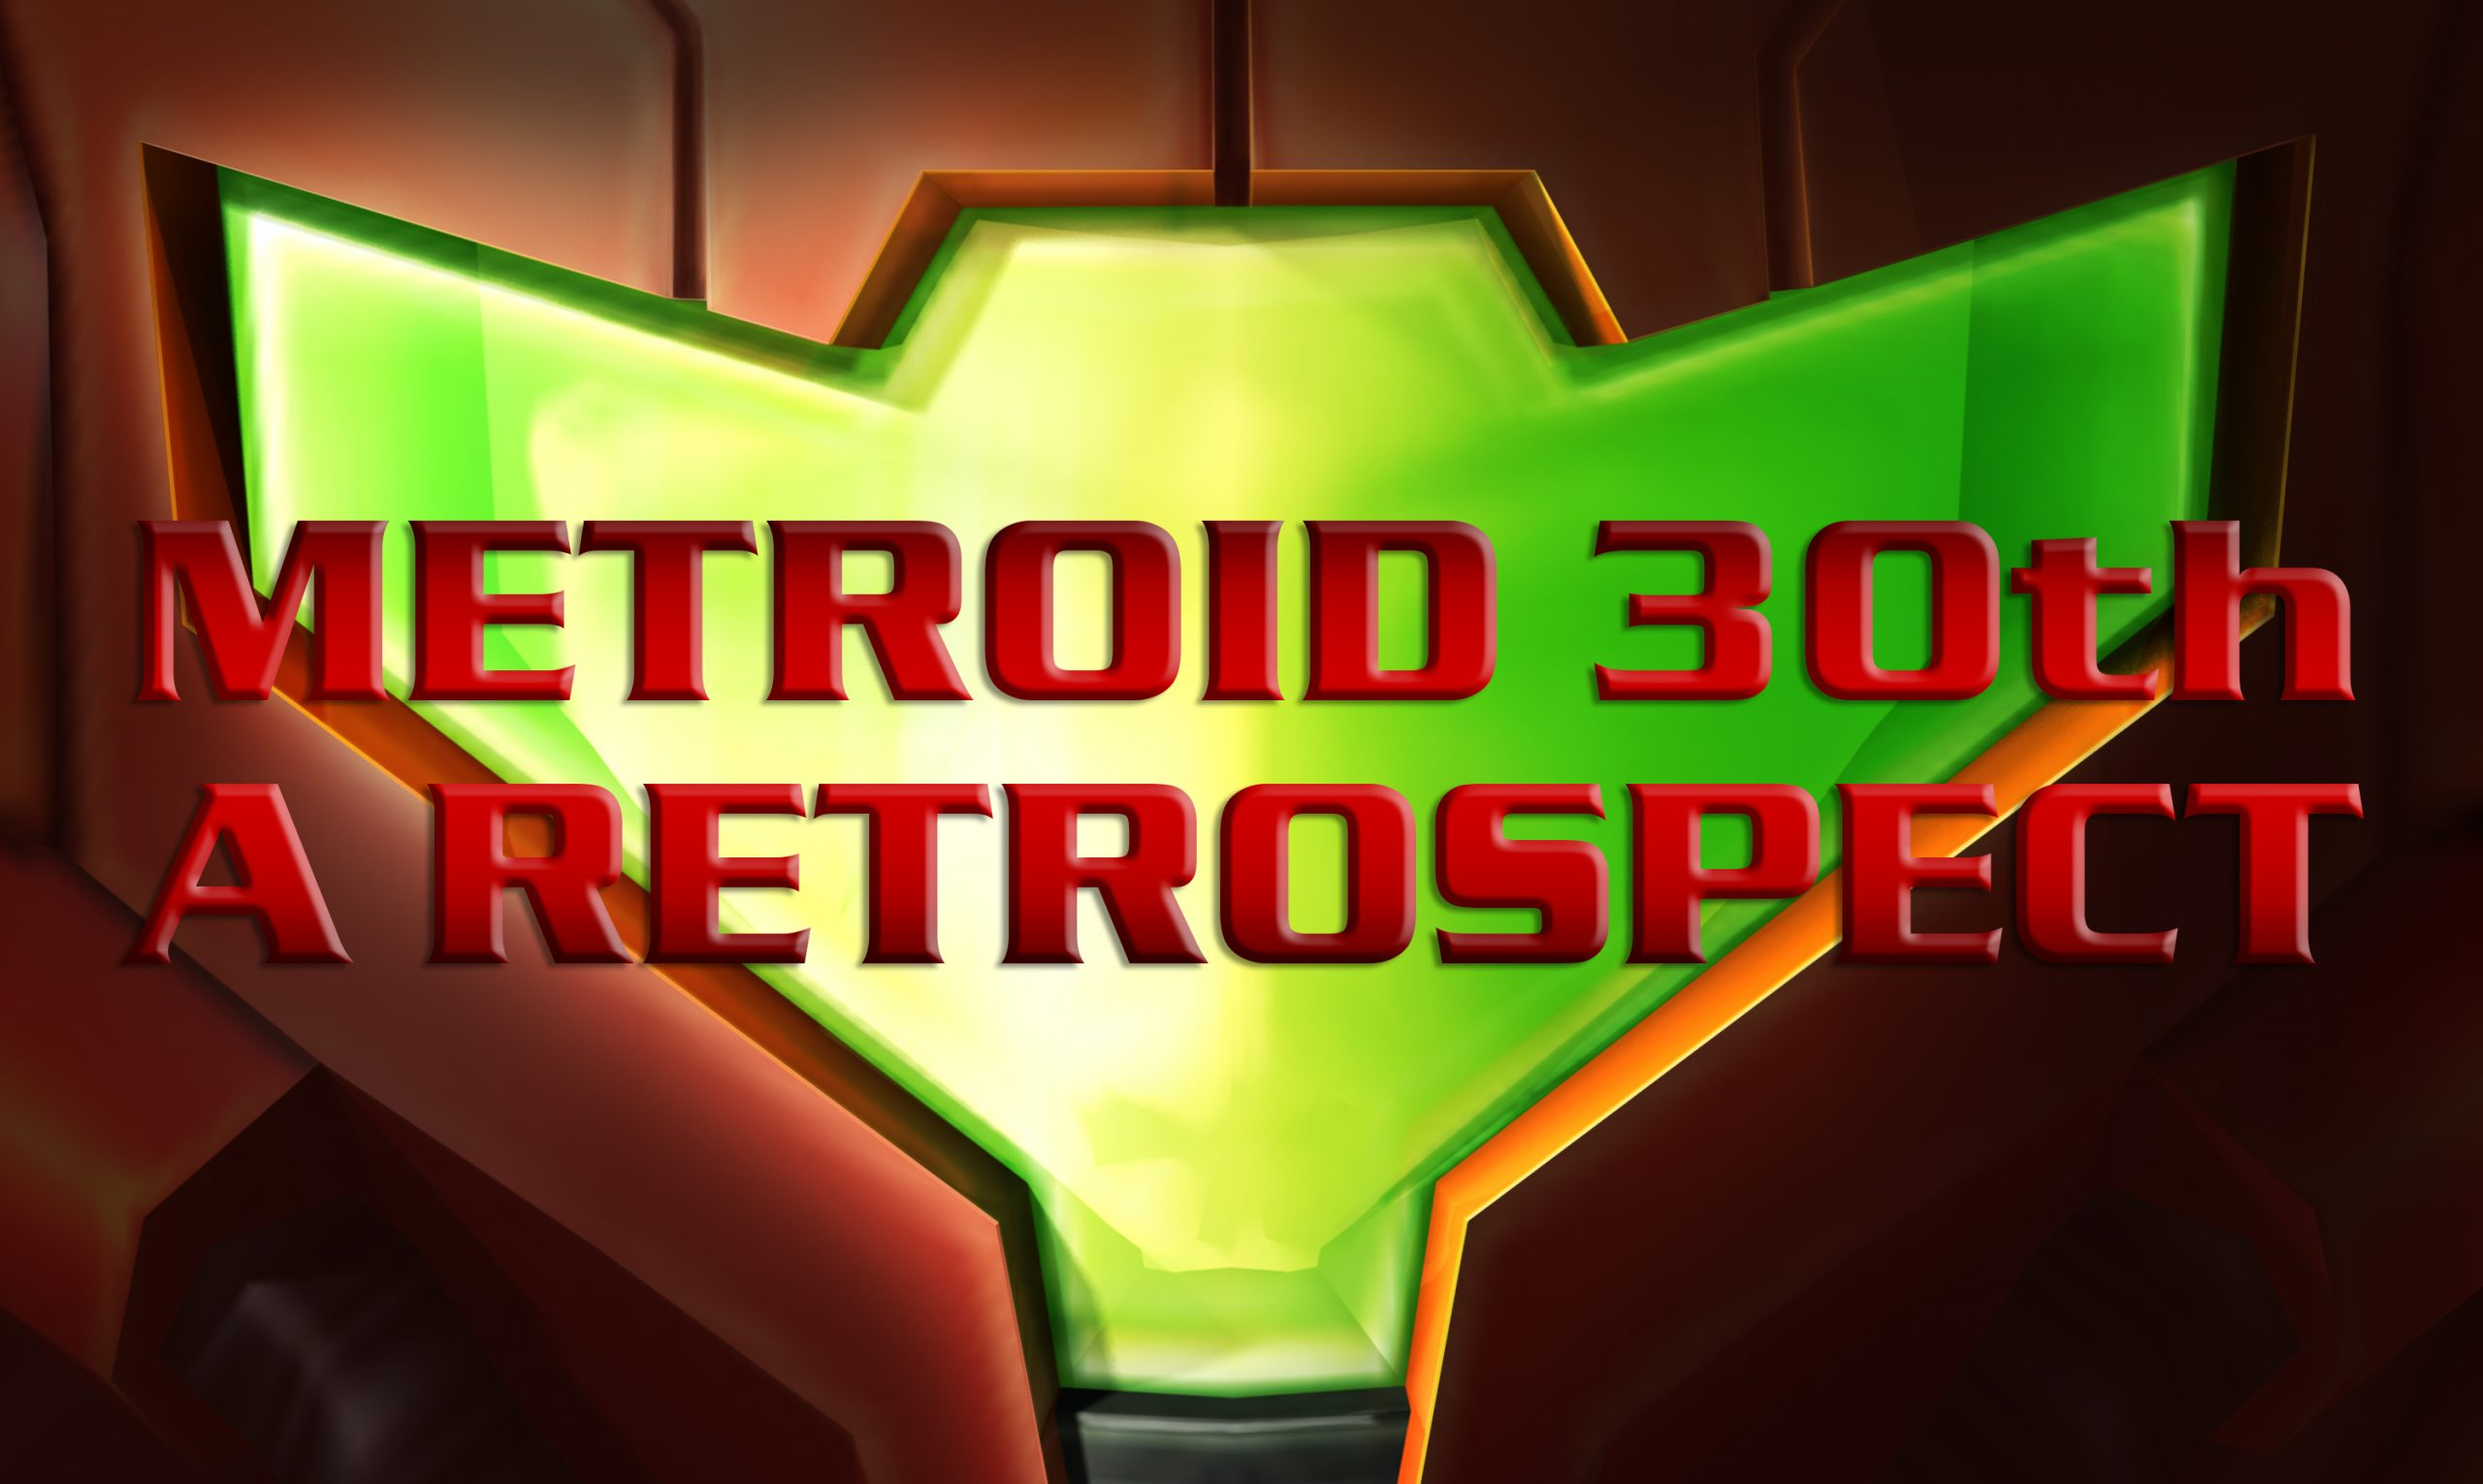 Metroid 30th Anniversary – A Retrospect